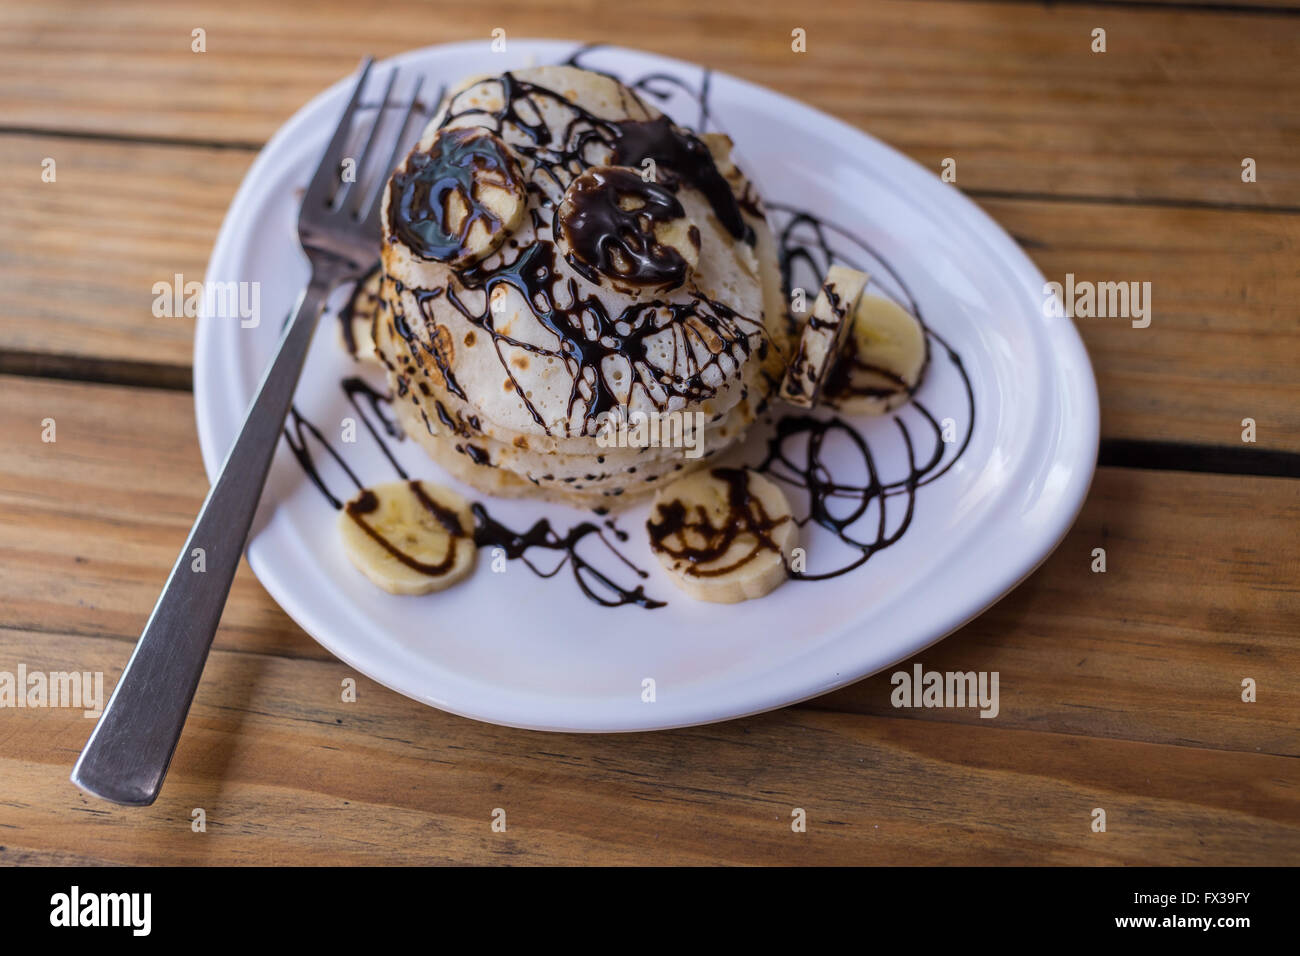 Stack of Pancakes in a restaurant with banana and chocolate sauce on top. Stock Photo